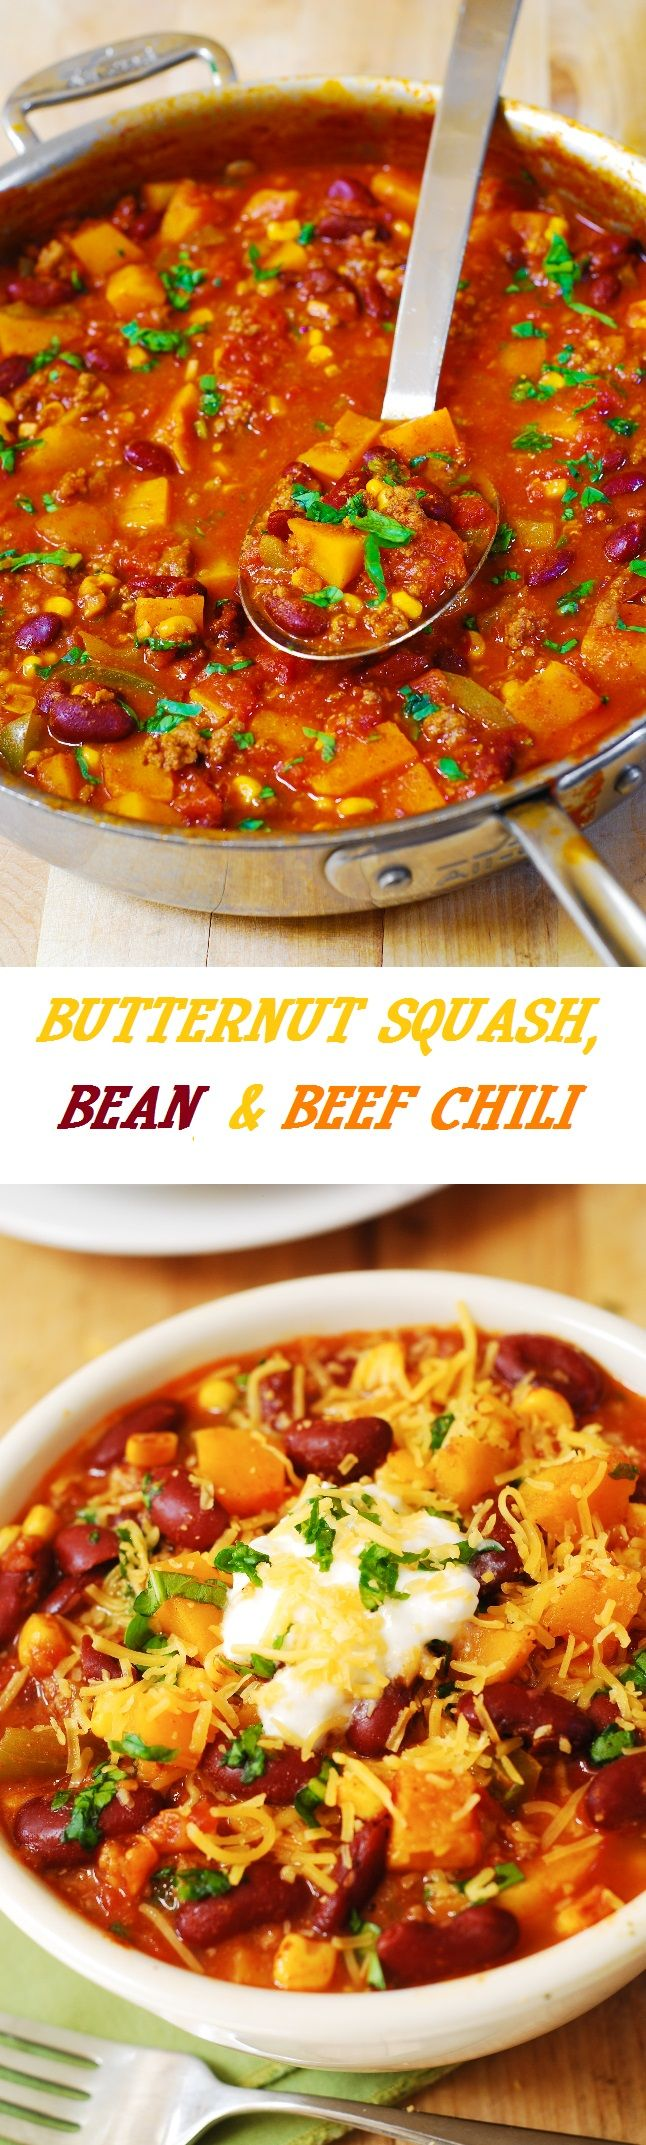 Drop the meat and this sounds great! Delicious Butternut Squash, Bean, and Beef Chili. Healthy, filling, and gluten free - it makes a great dinner for everyone!   Top it with Greek yogurt!  #soup #stew